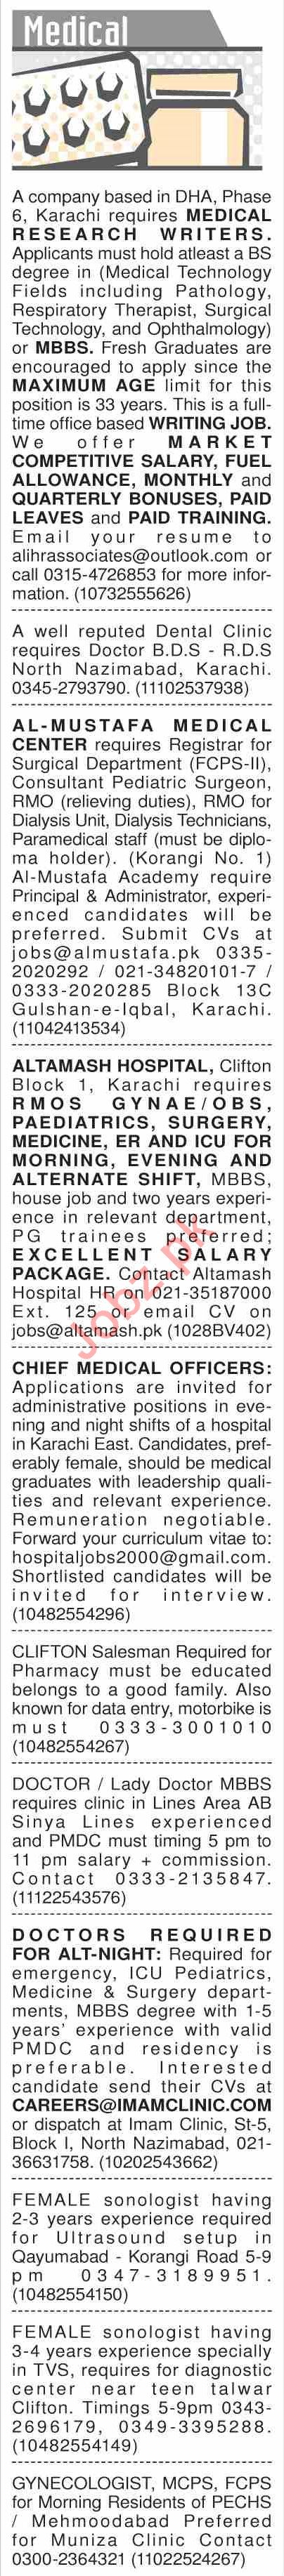 Dawn Sunday Classified Ads 21st July 2019 for Medical Staff 2019 Job